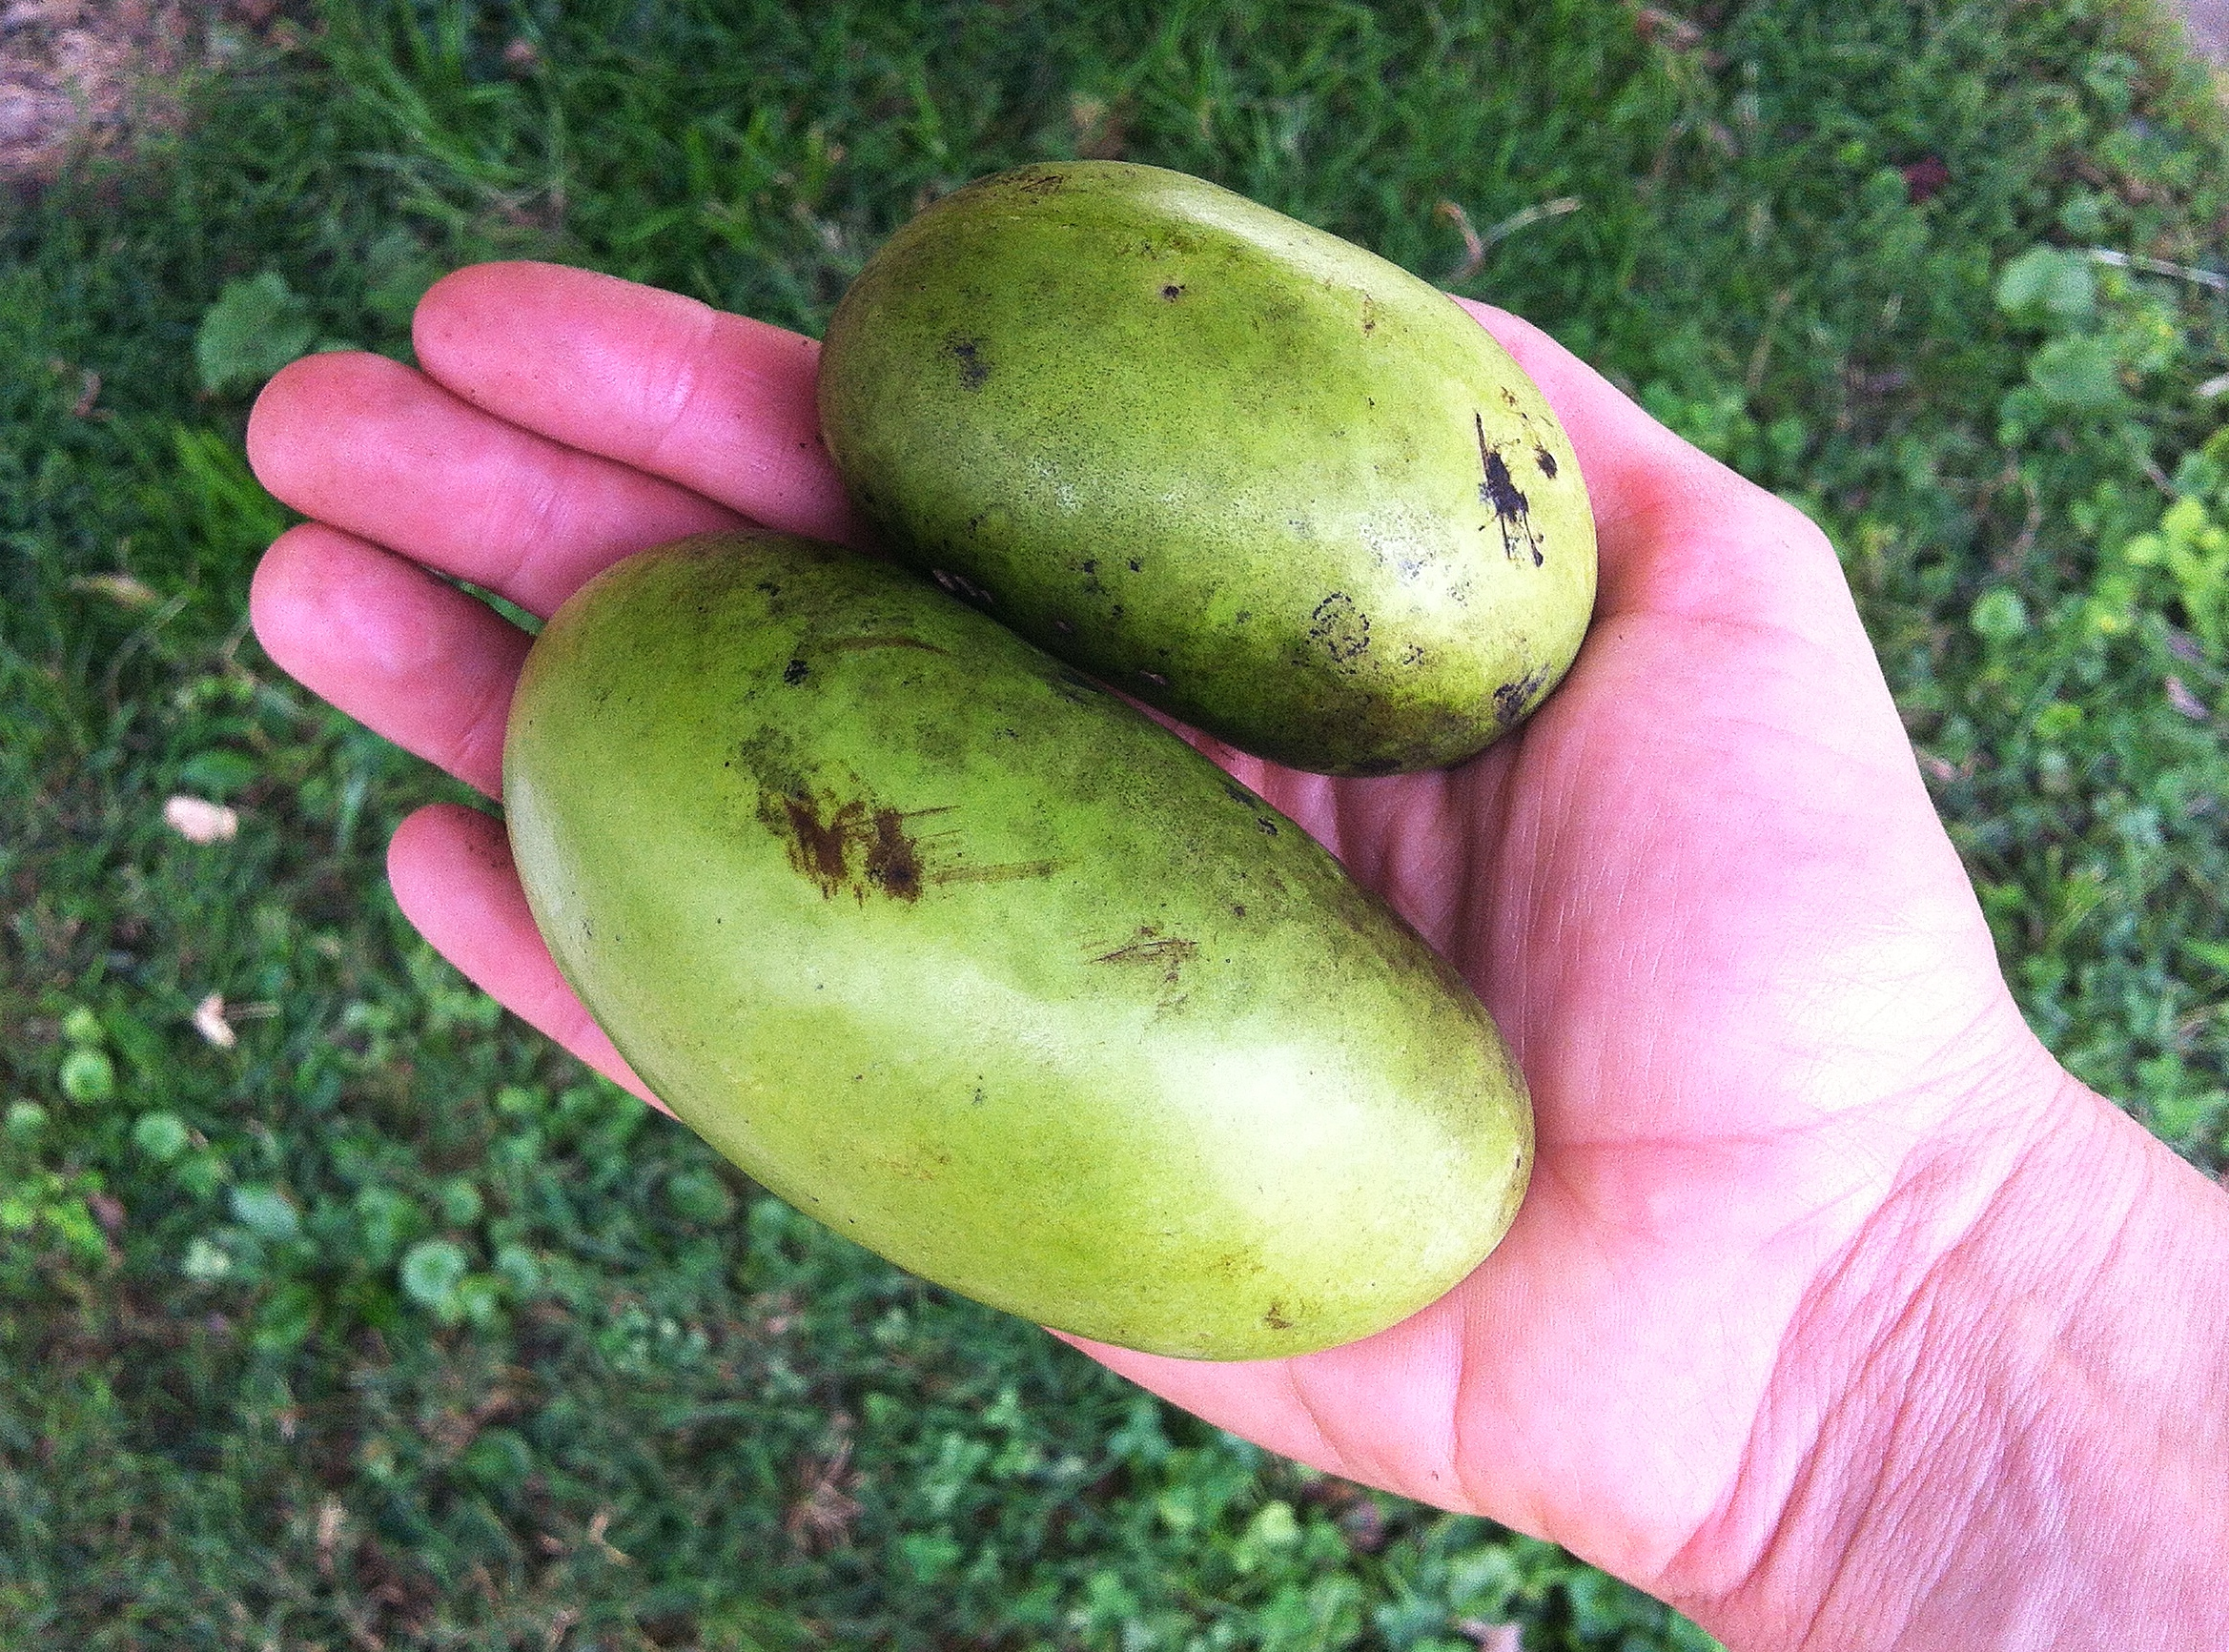 Pawpaws in the wild!